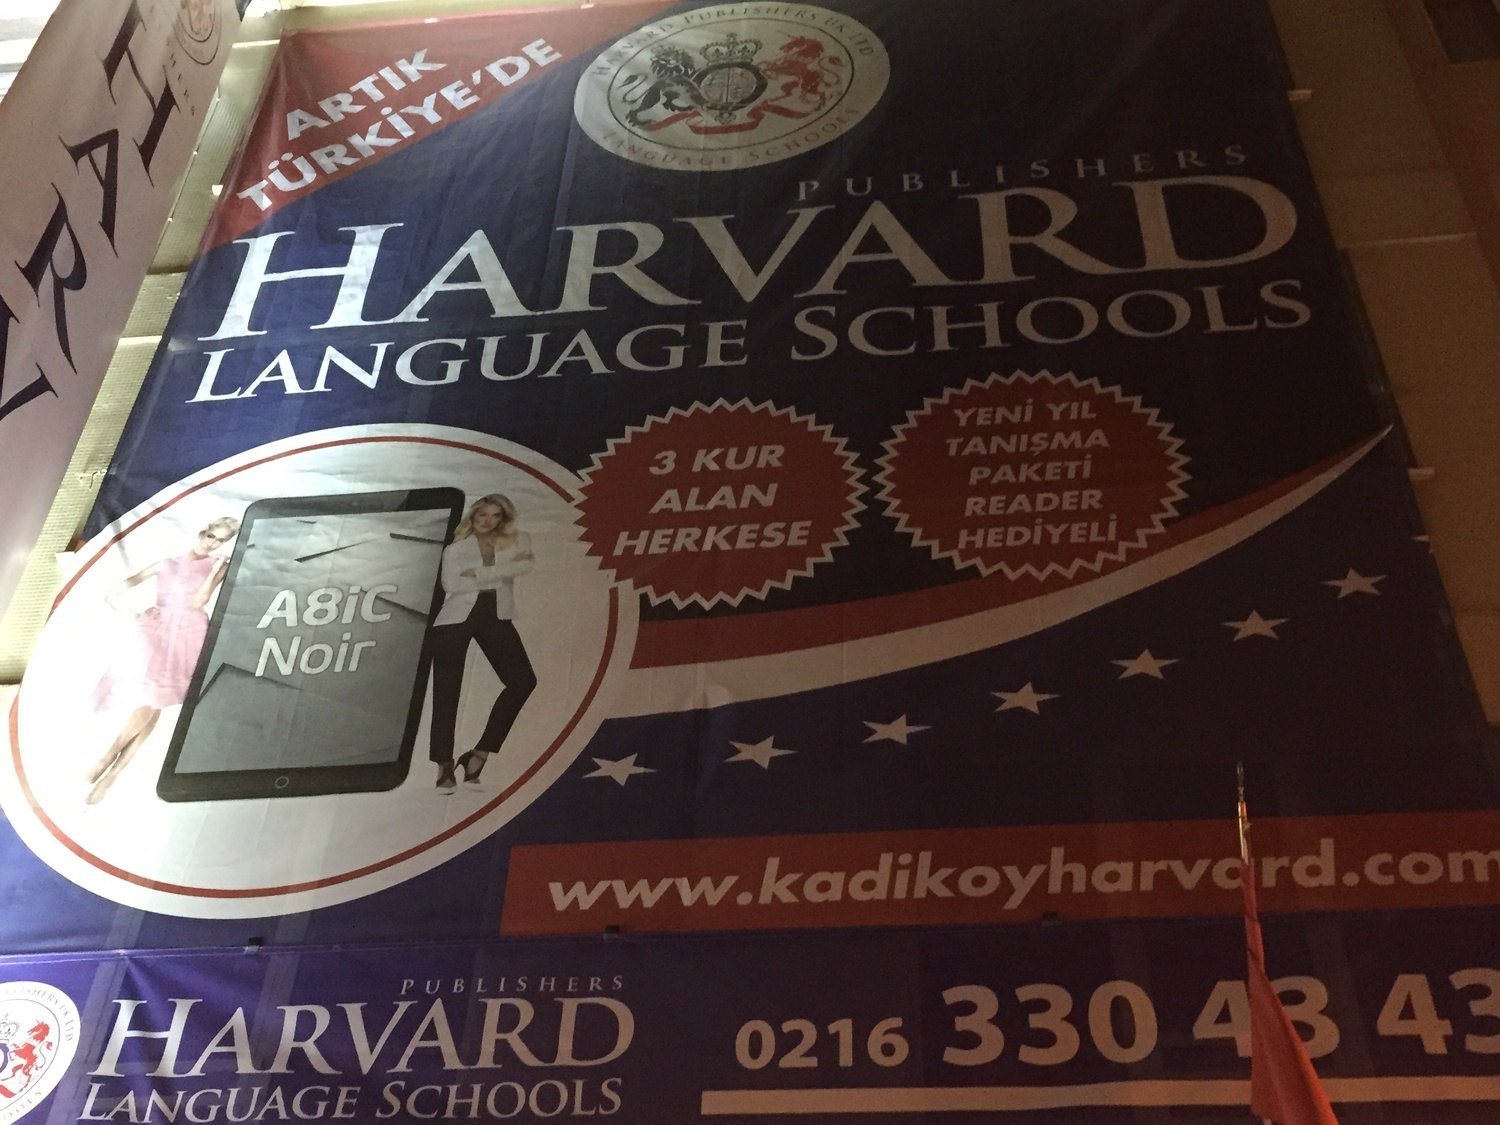 A Turkish language school uses Harvard's trademark without permission.